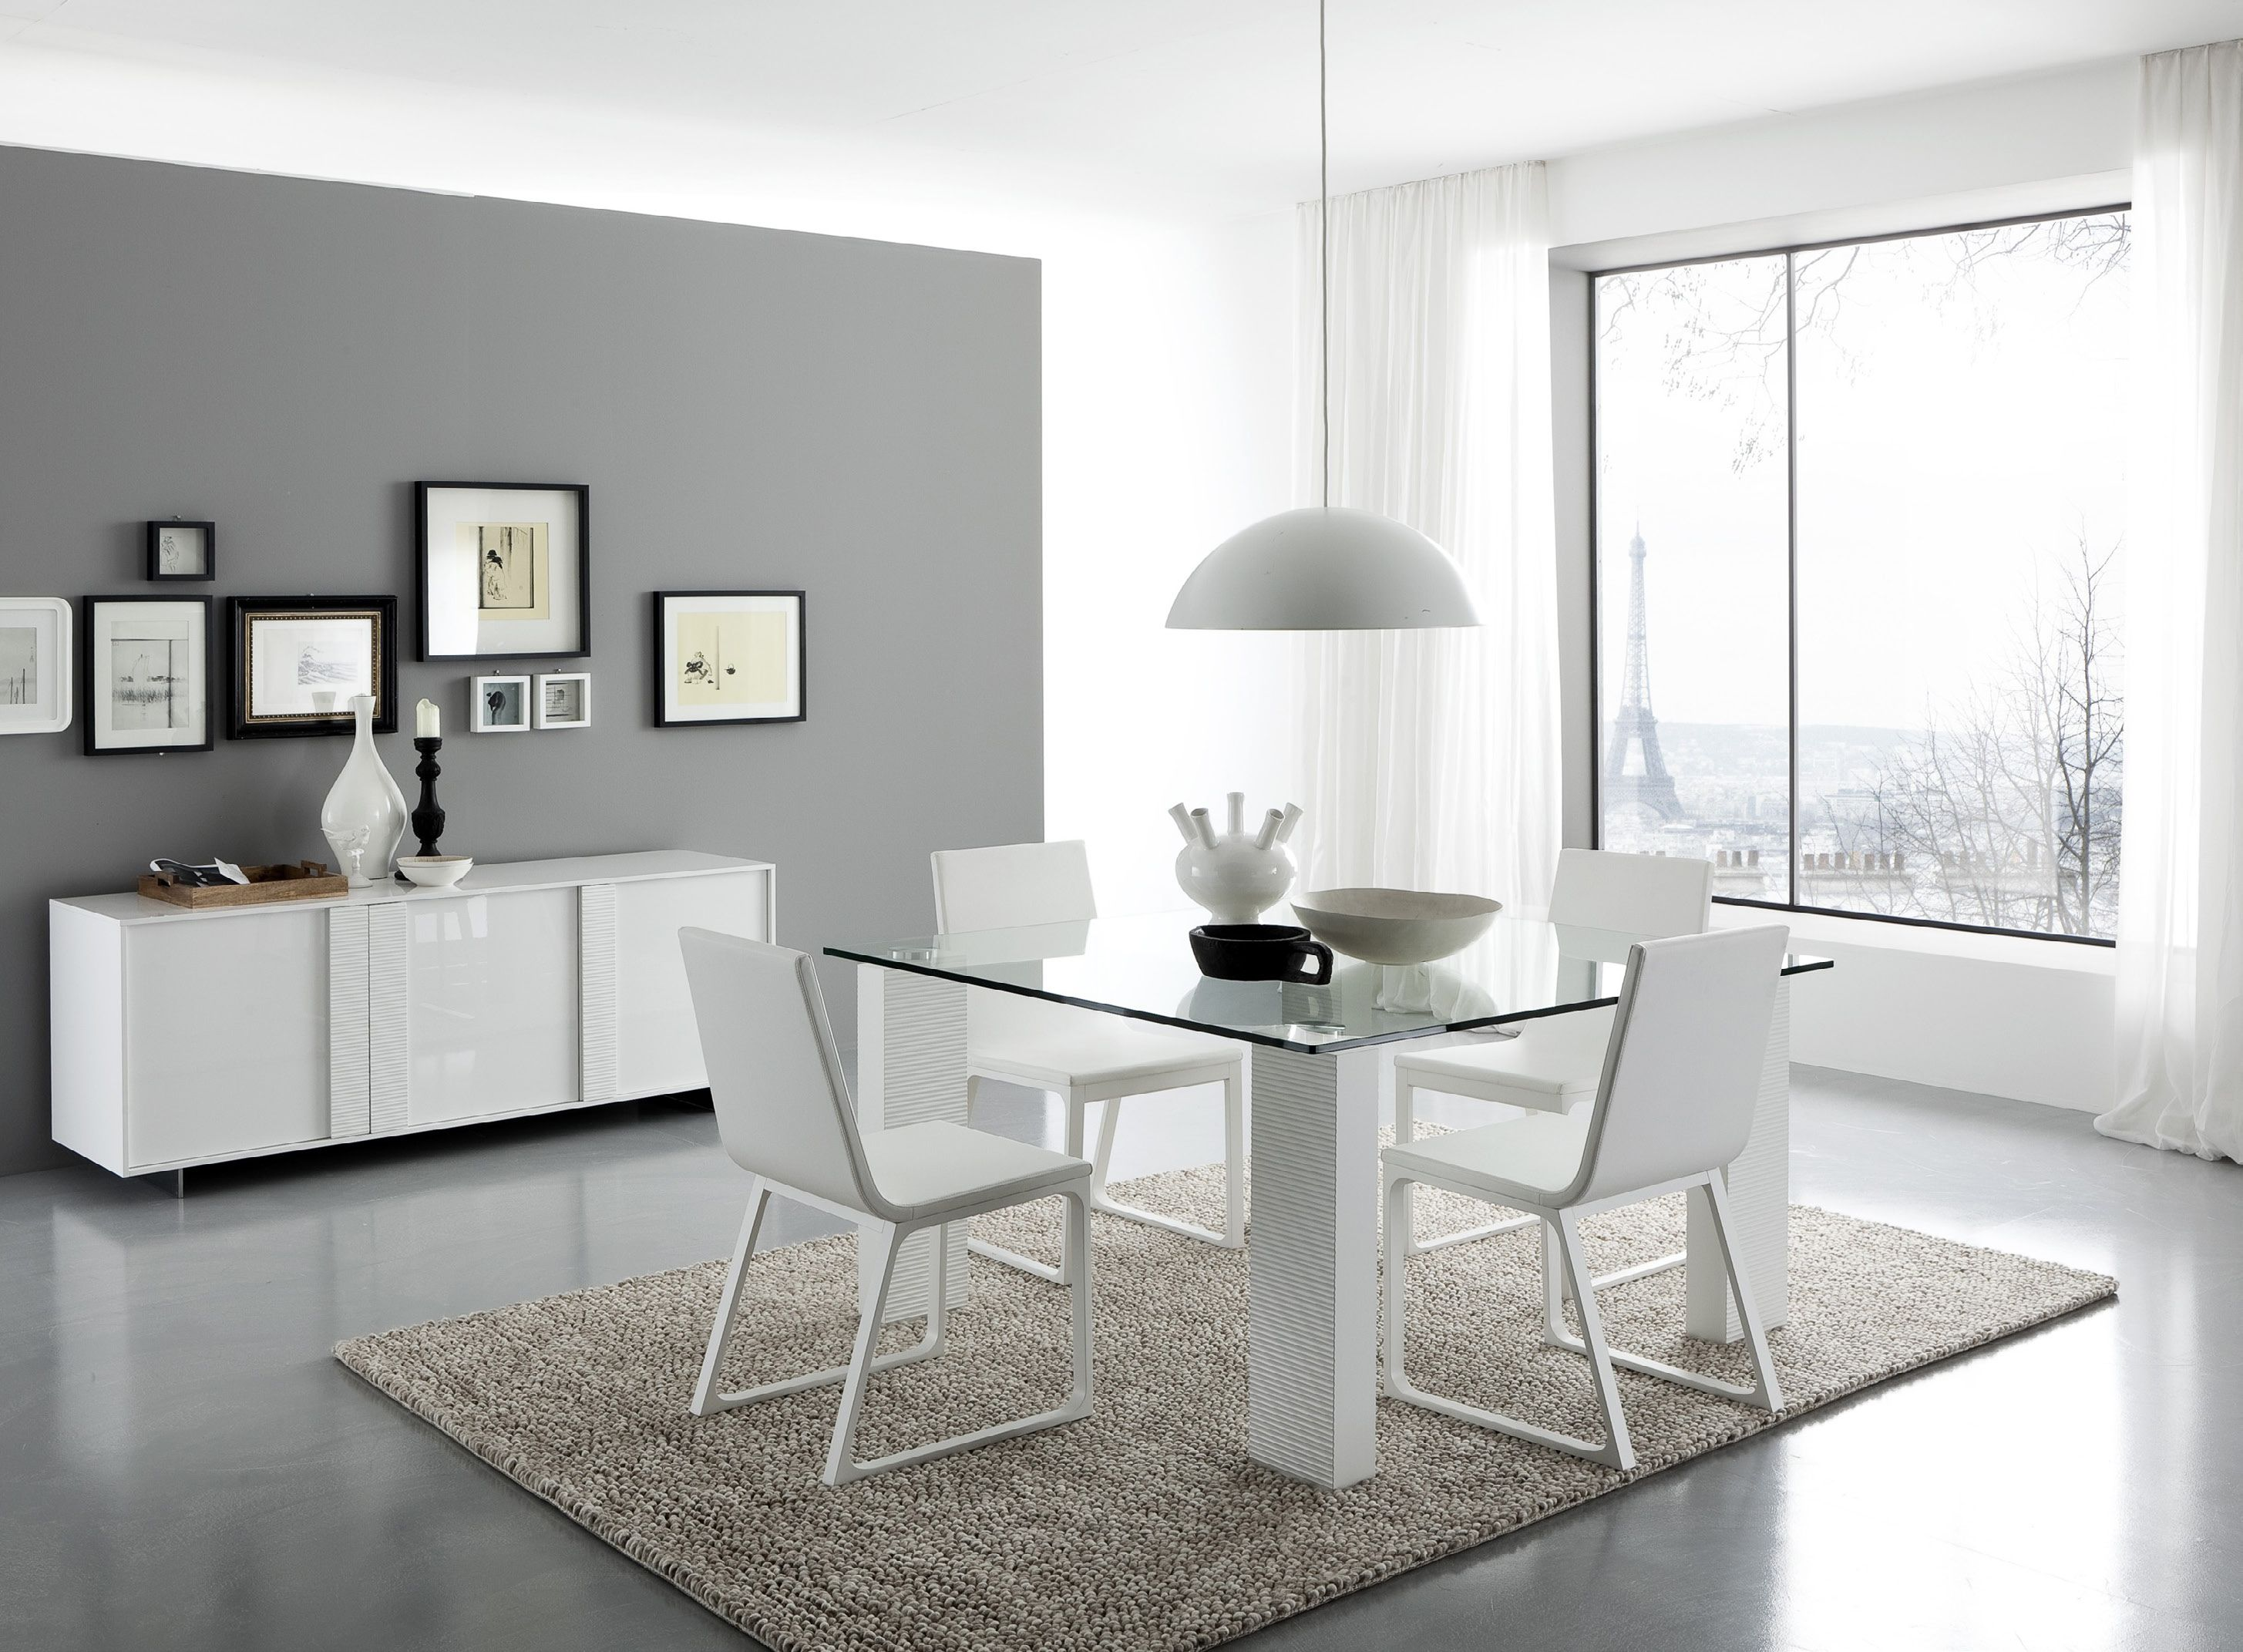 White Dining Room Decor Italian Dining Room Furniture Sets With Beautiful  Lighting And Table Lamp Gloss